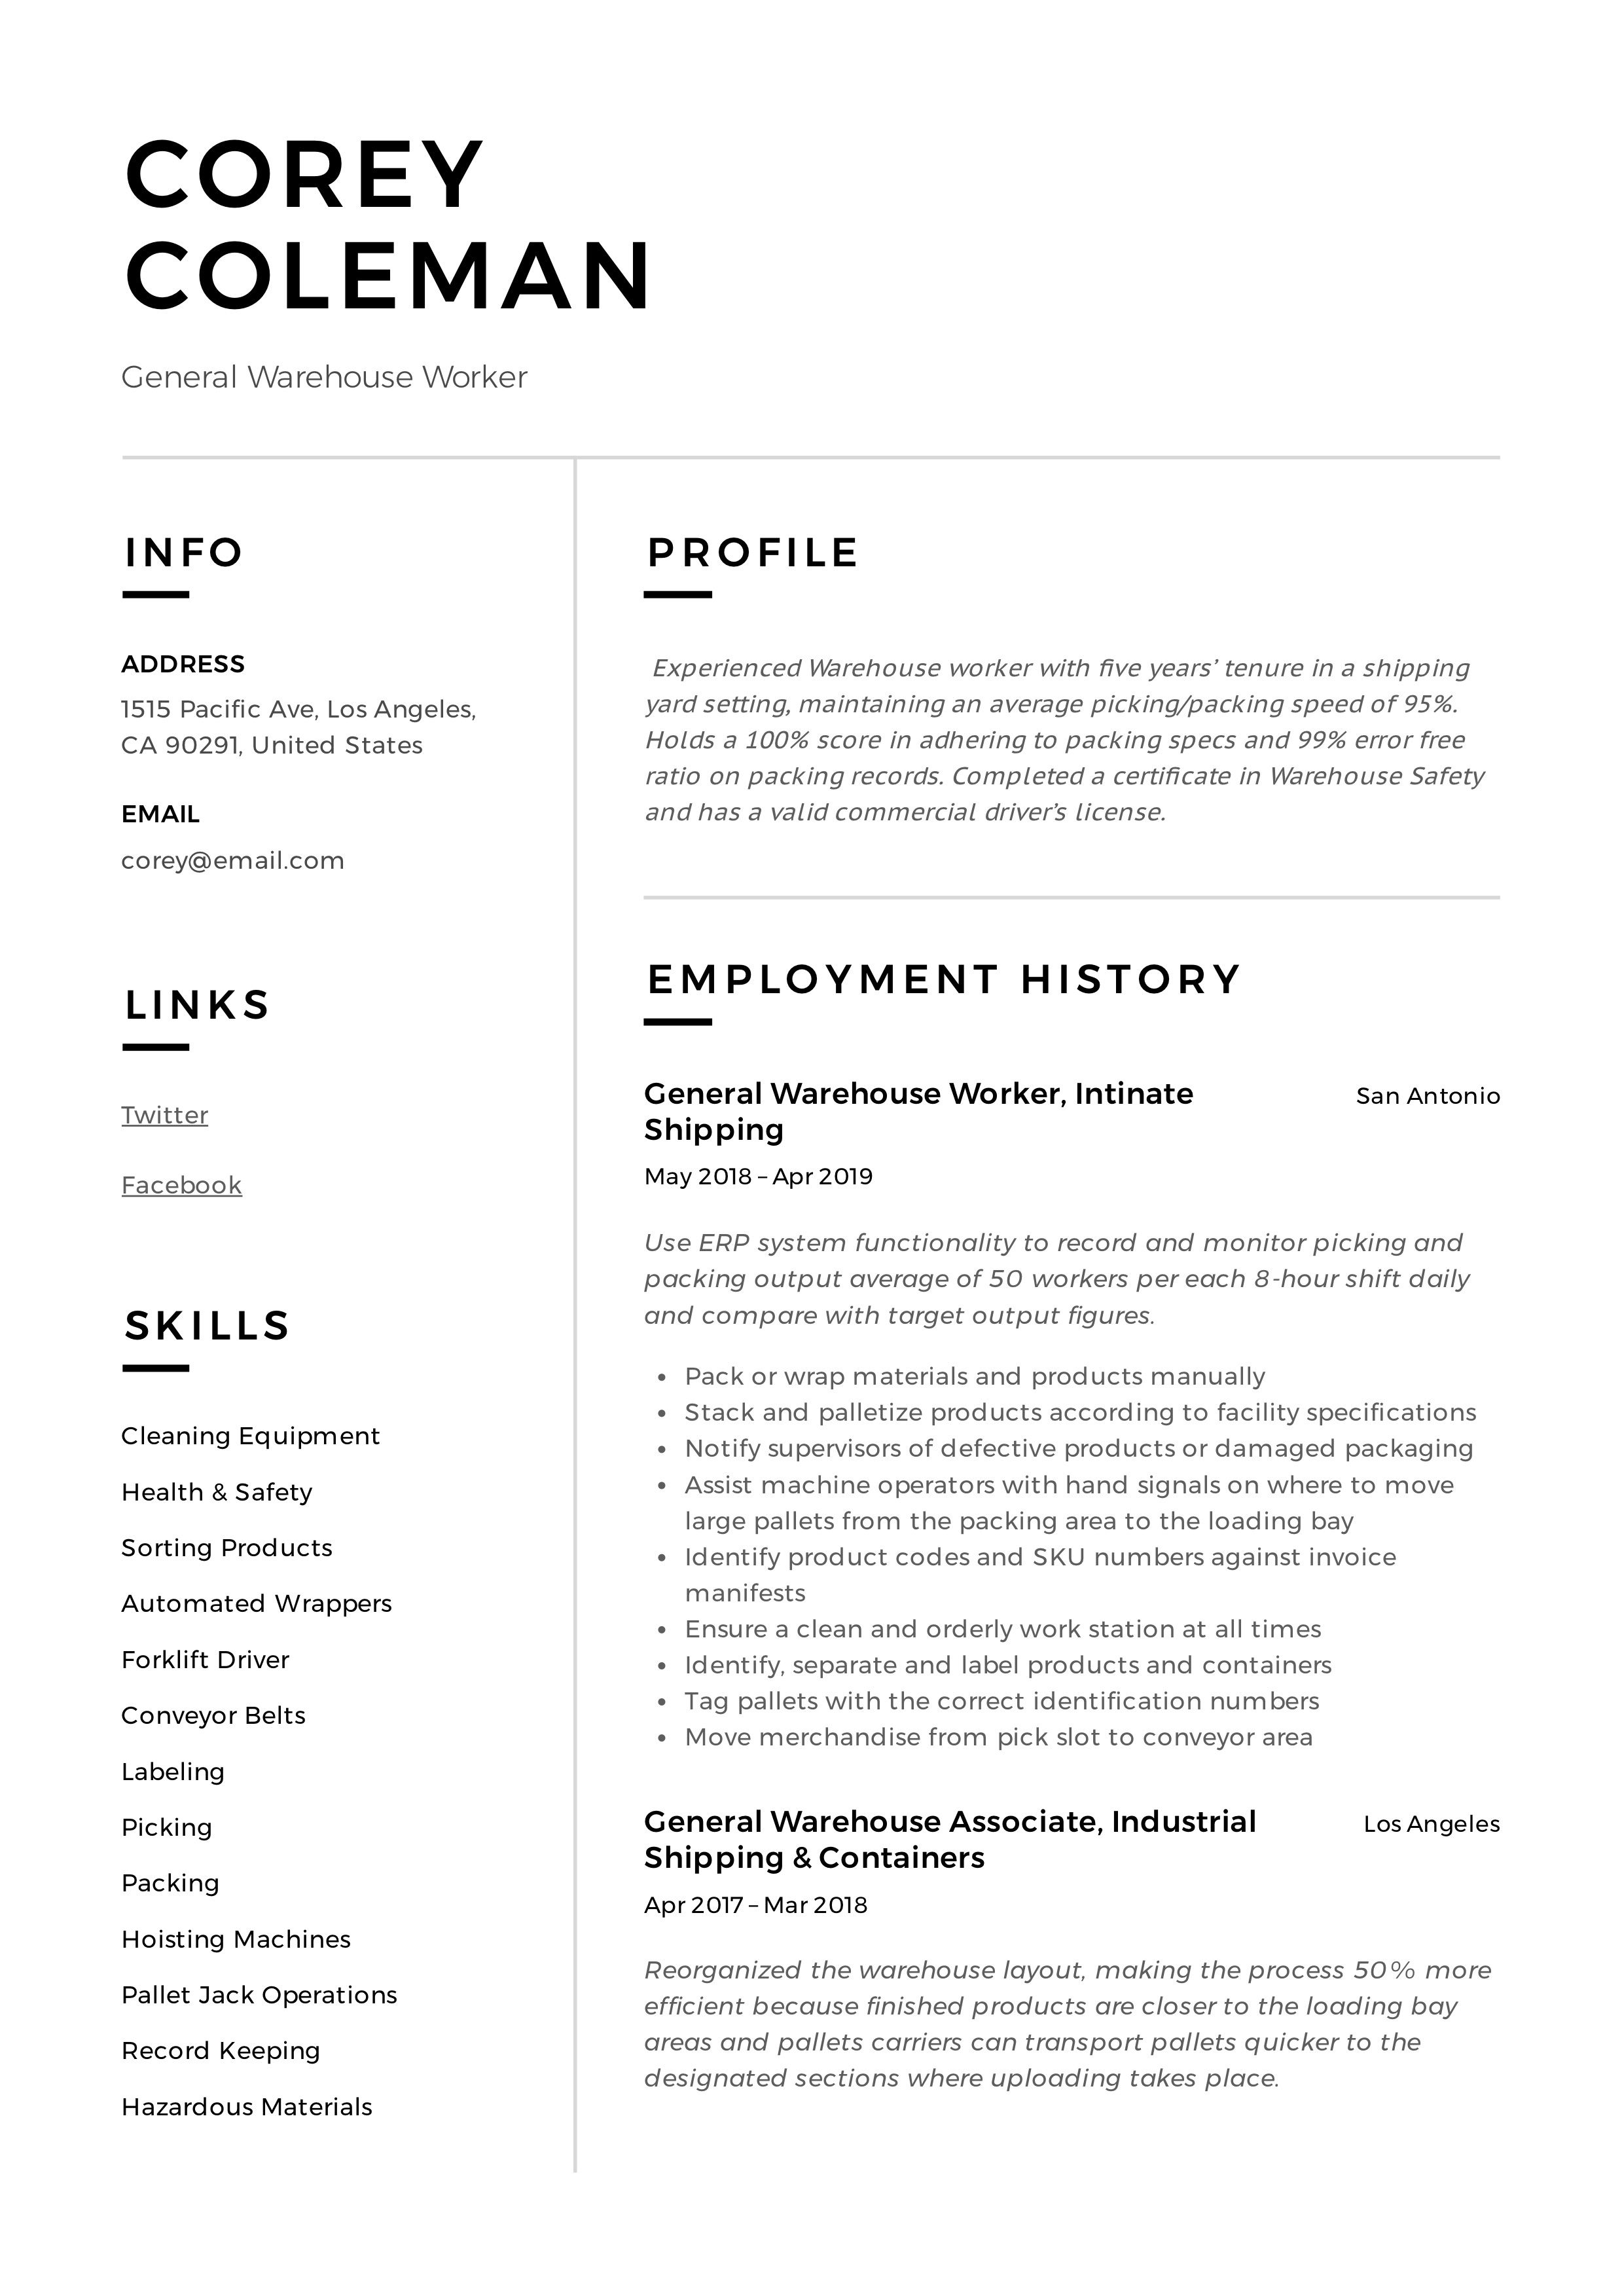 Professional General Warehouse Worker Resume, template